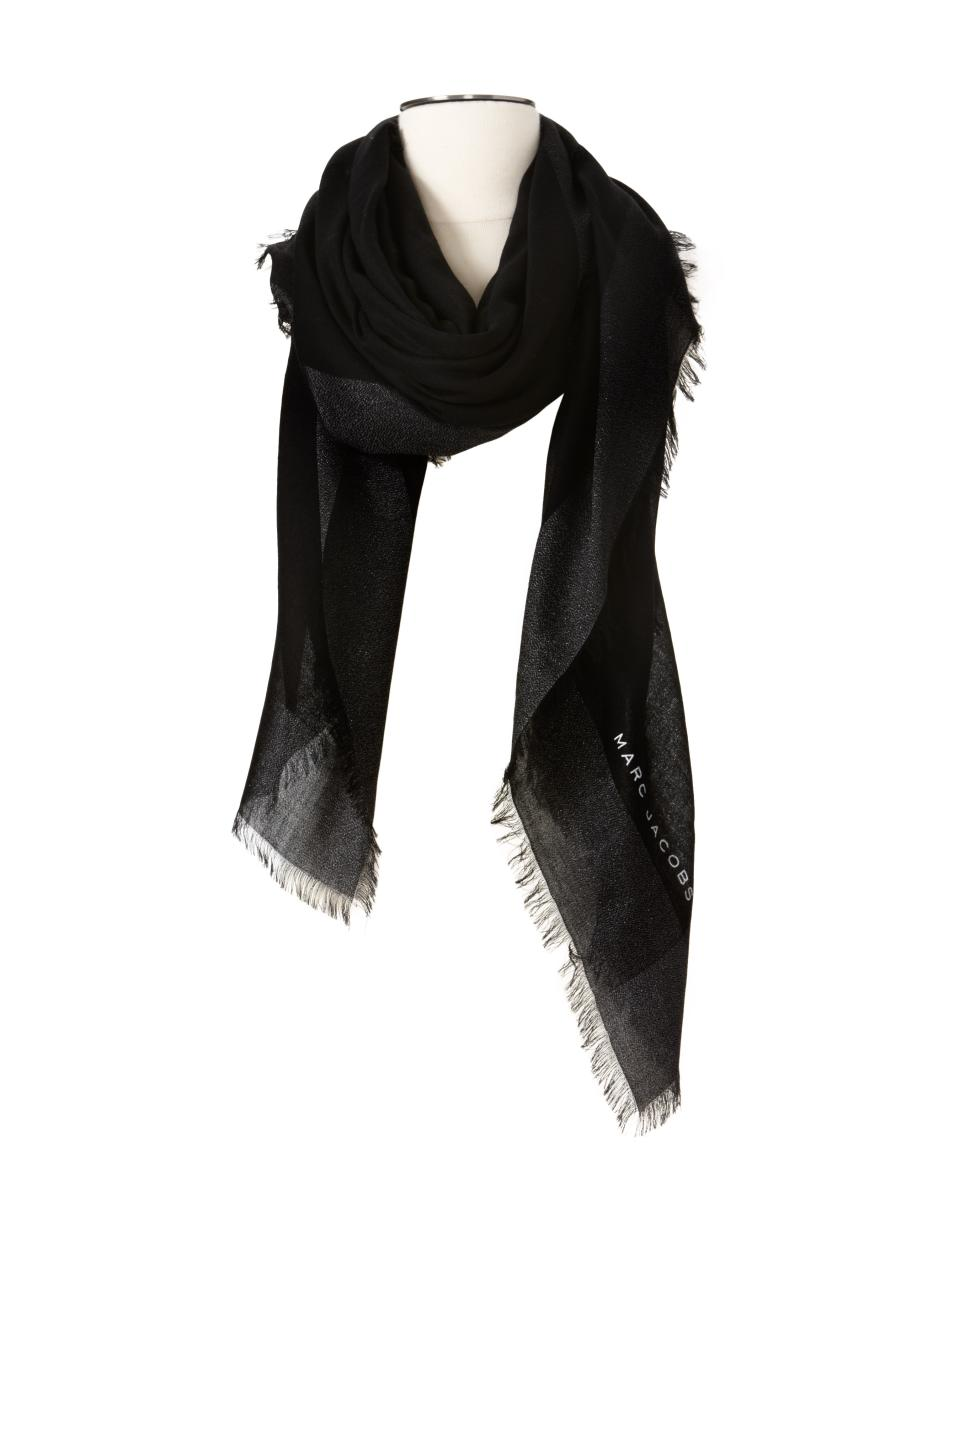 <b>Marc Jacobs for Target + Neiman Marcus Holiday Collection Scarf</b><br><br> Price: $69.99<br><br>